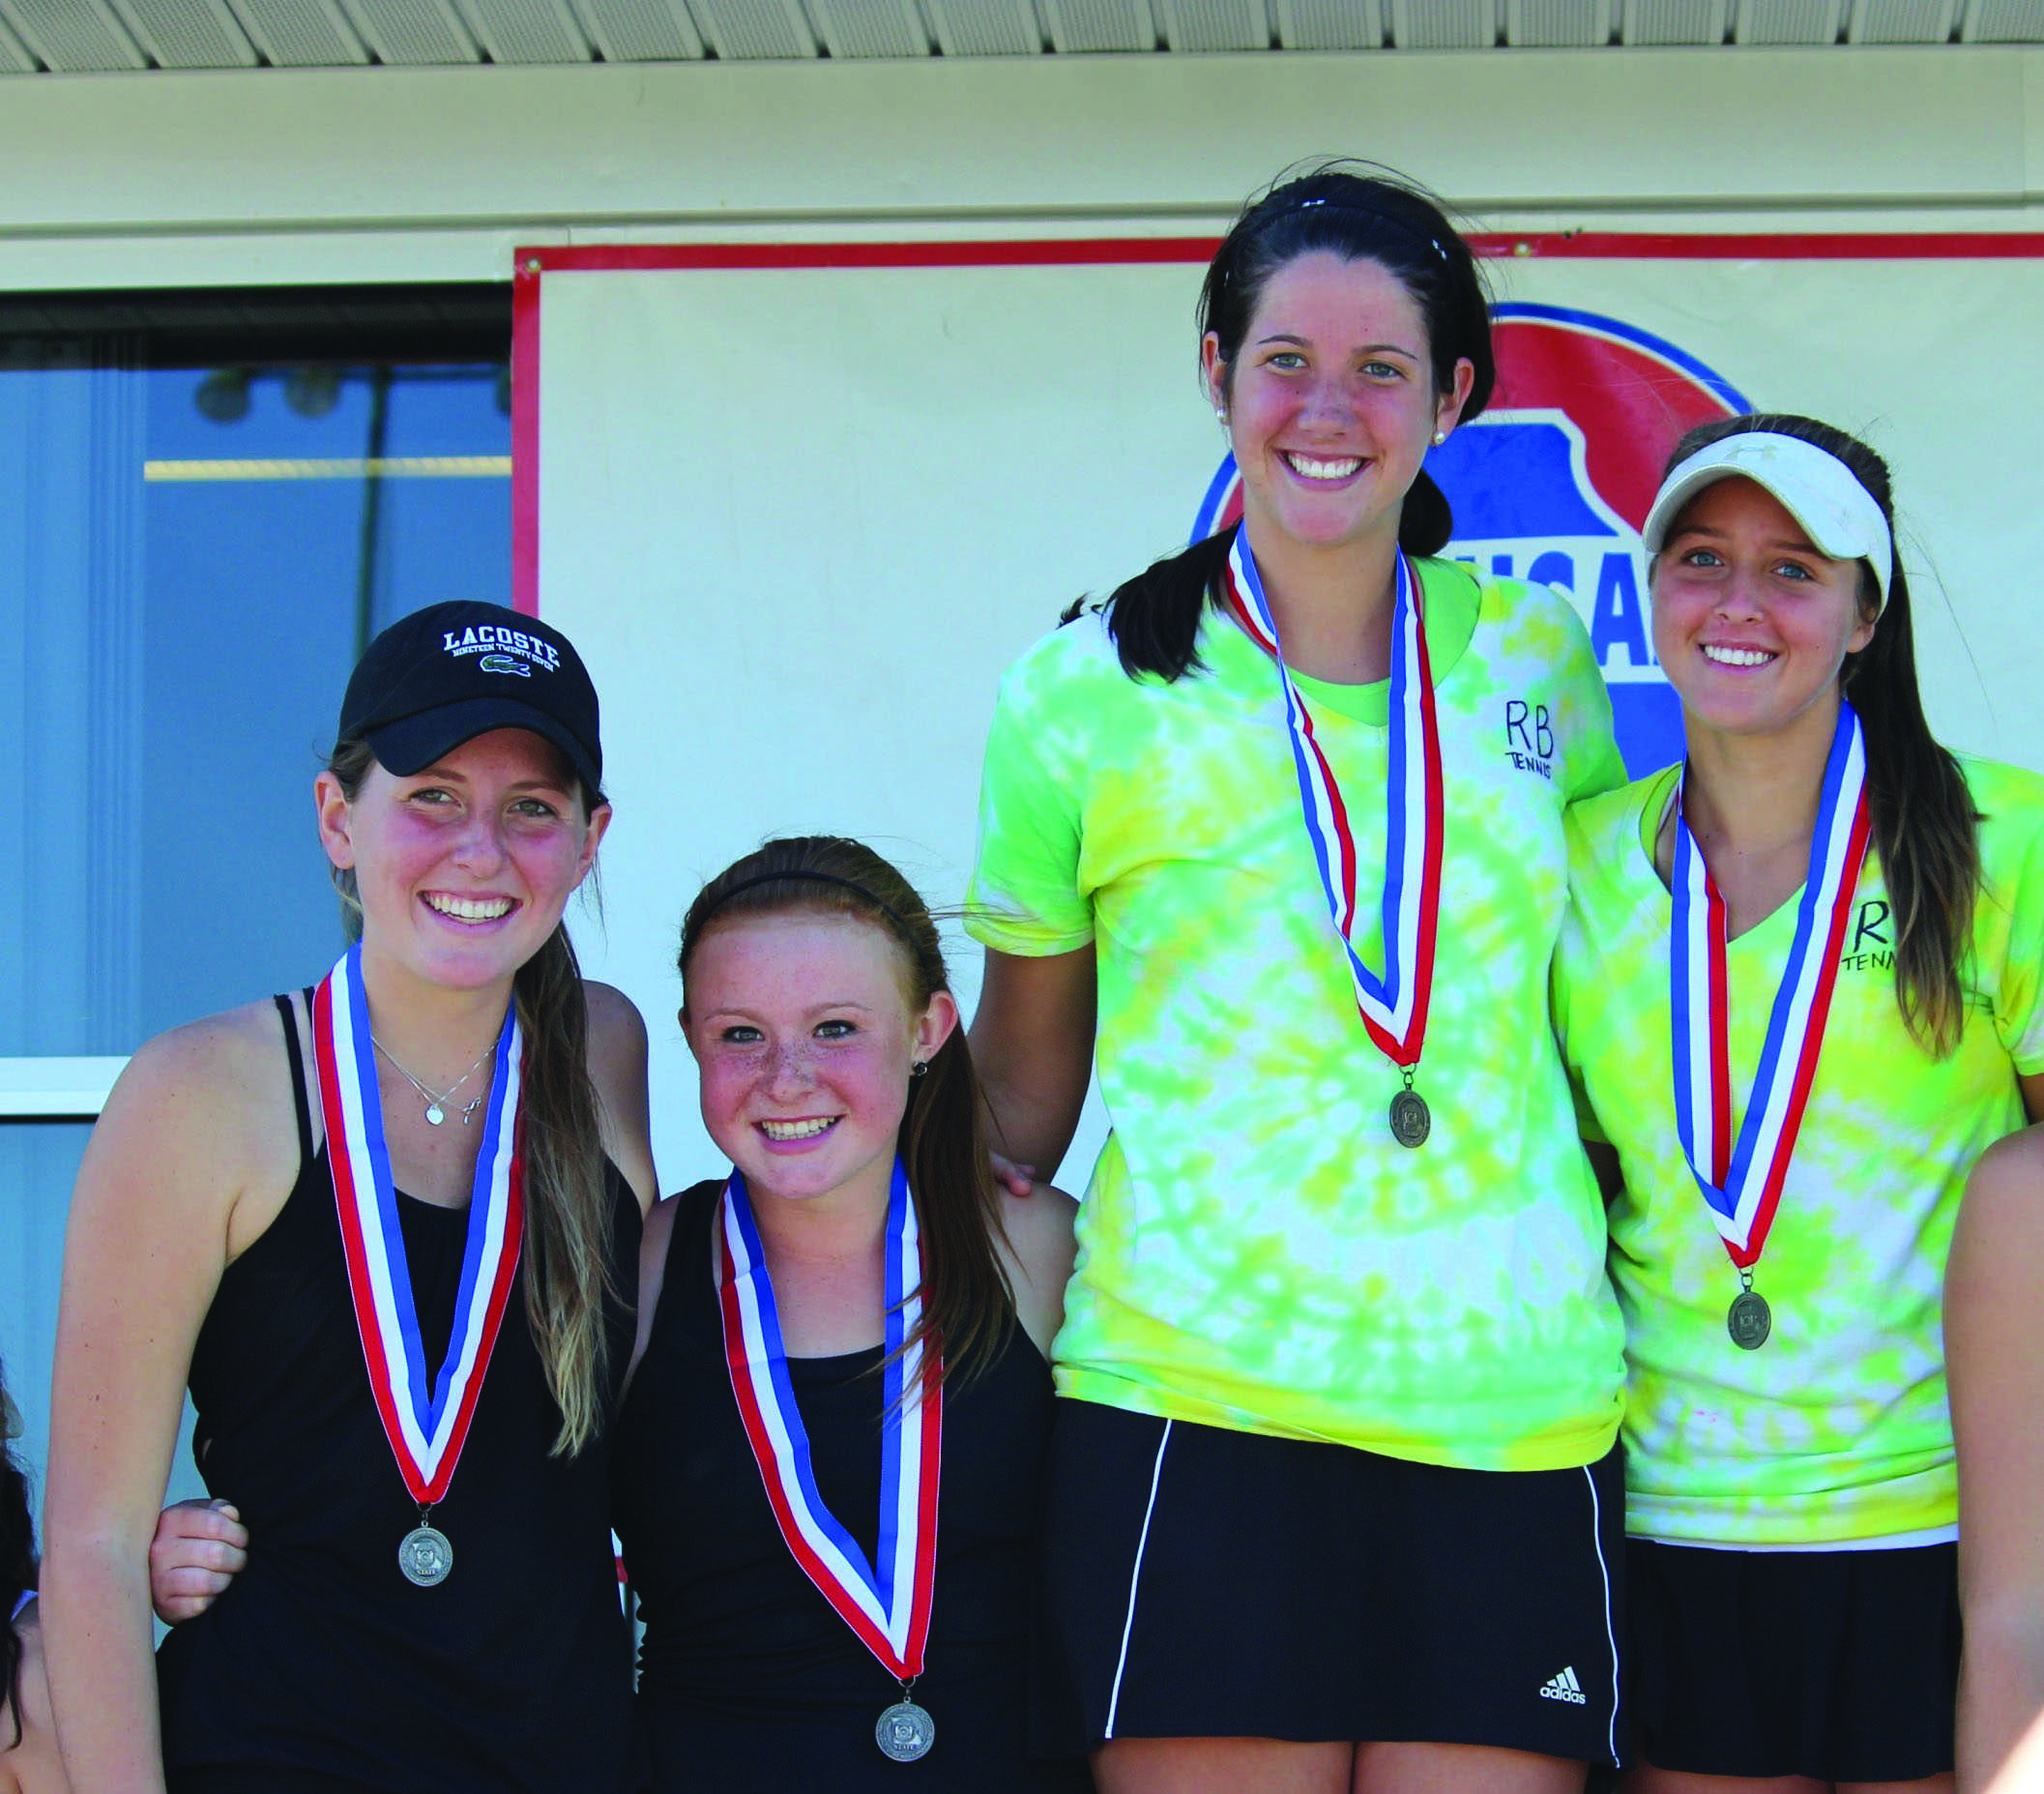 Racket-ing up points:  From left, senior Maddy Kayser, junior Allison Baker, sophomore Phoebe Boeschen and junior Sophi Farid competed in the state championship doubles match taking the first and second places overall, after each other. The team came in second overall.